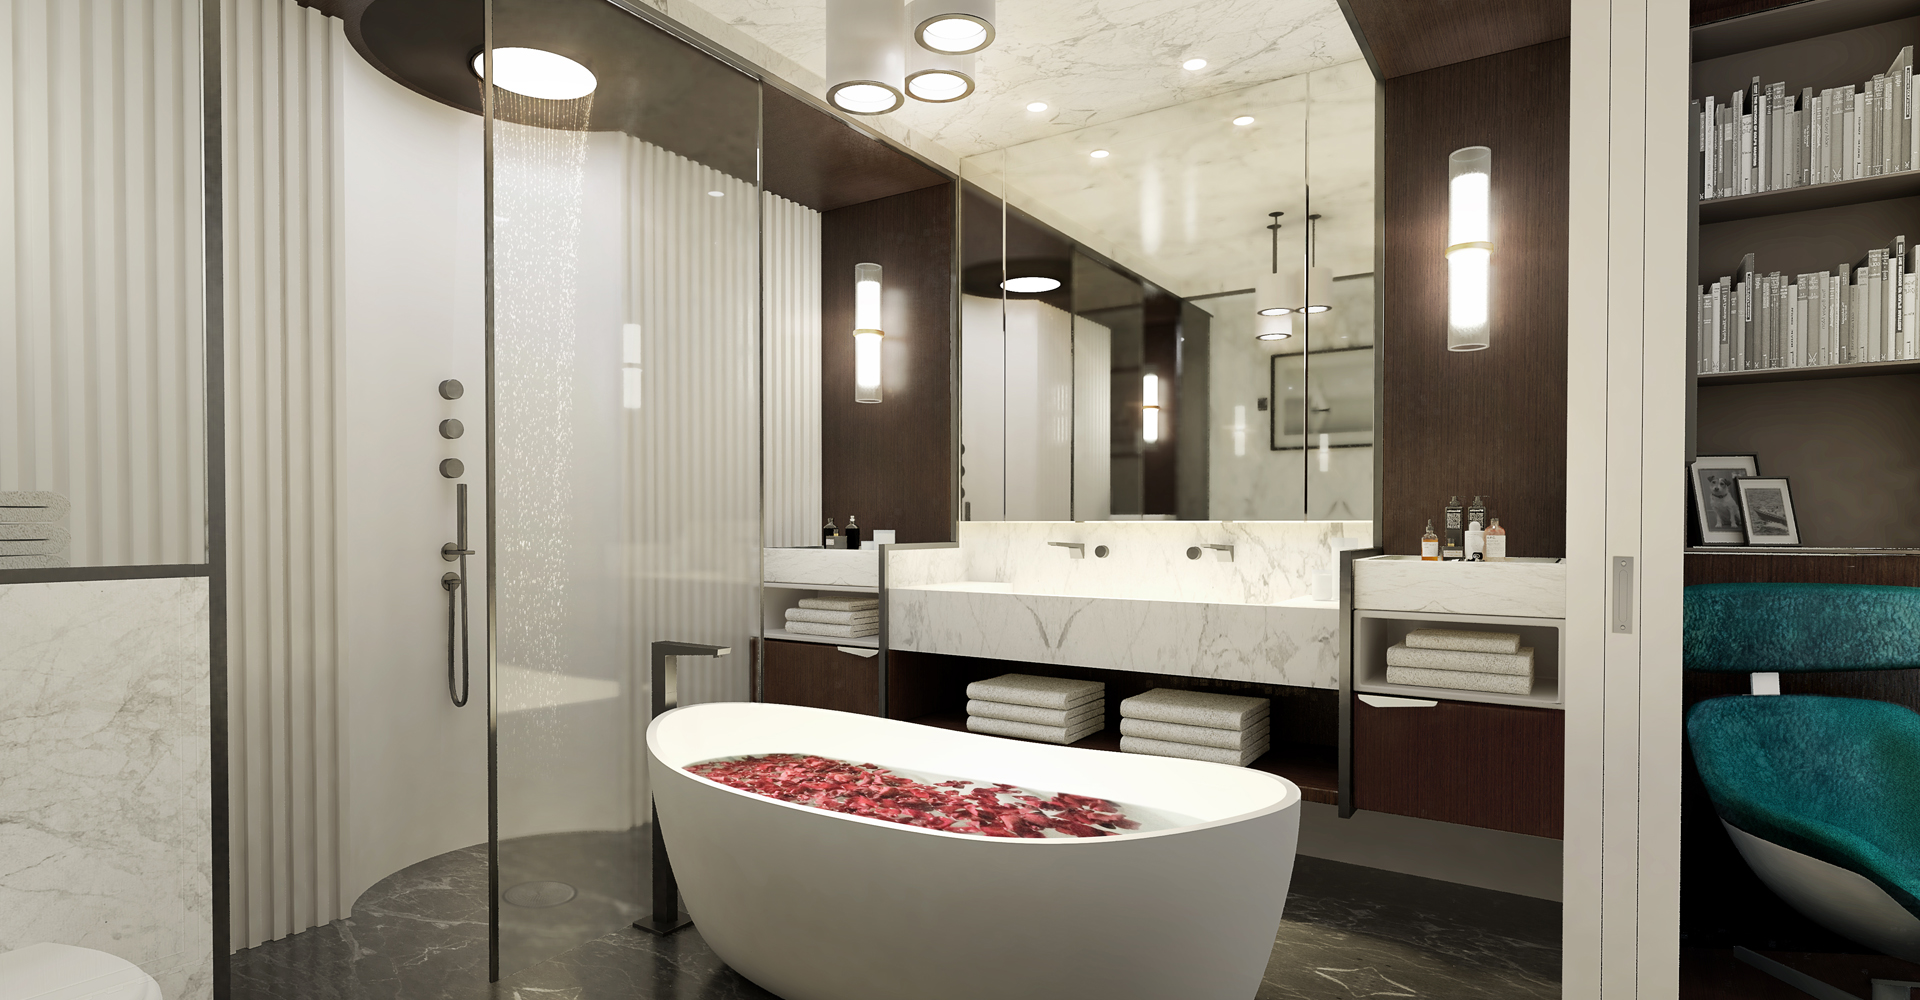 An indulgent motor yacht bathroom design